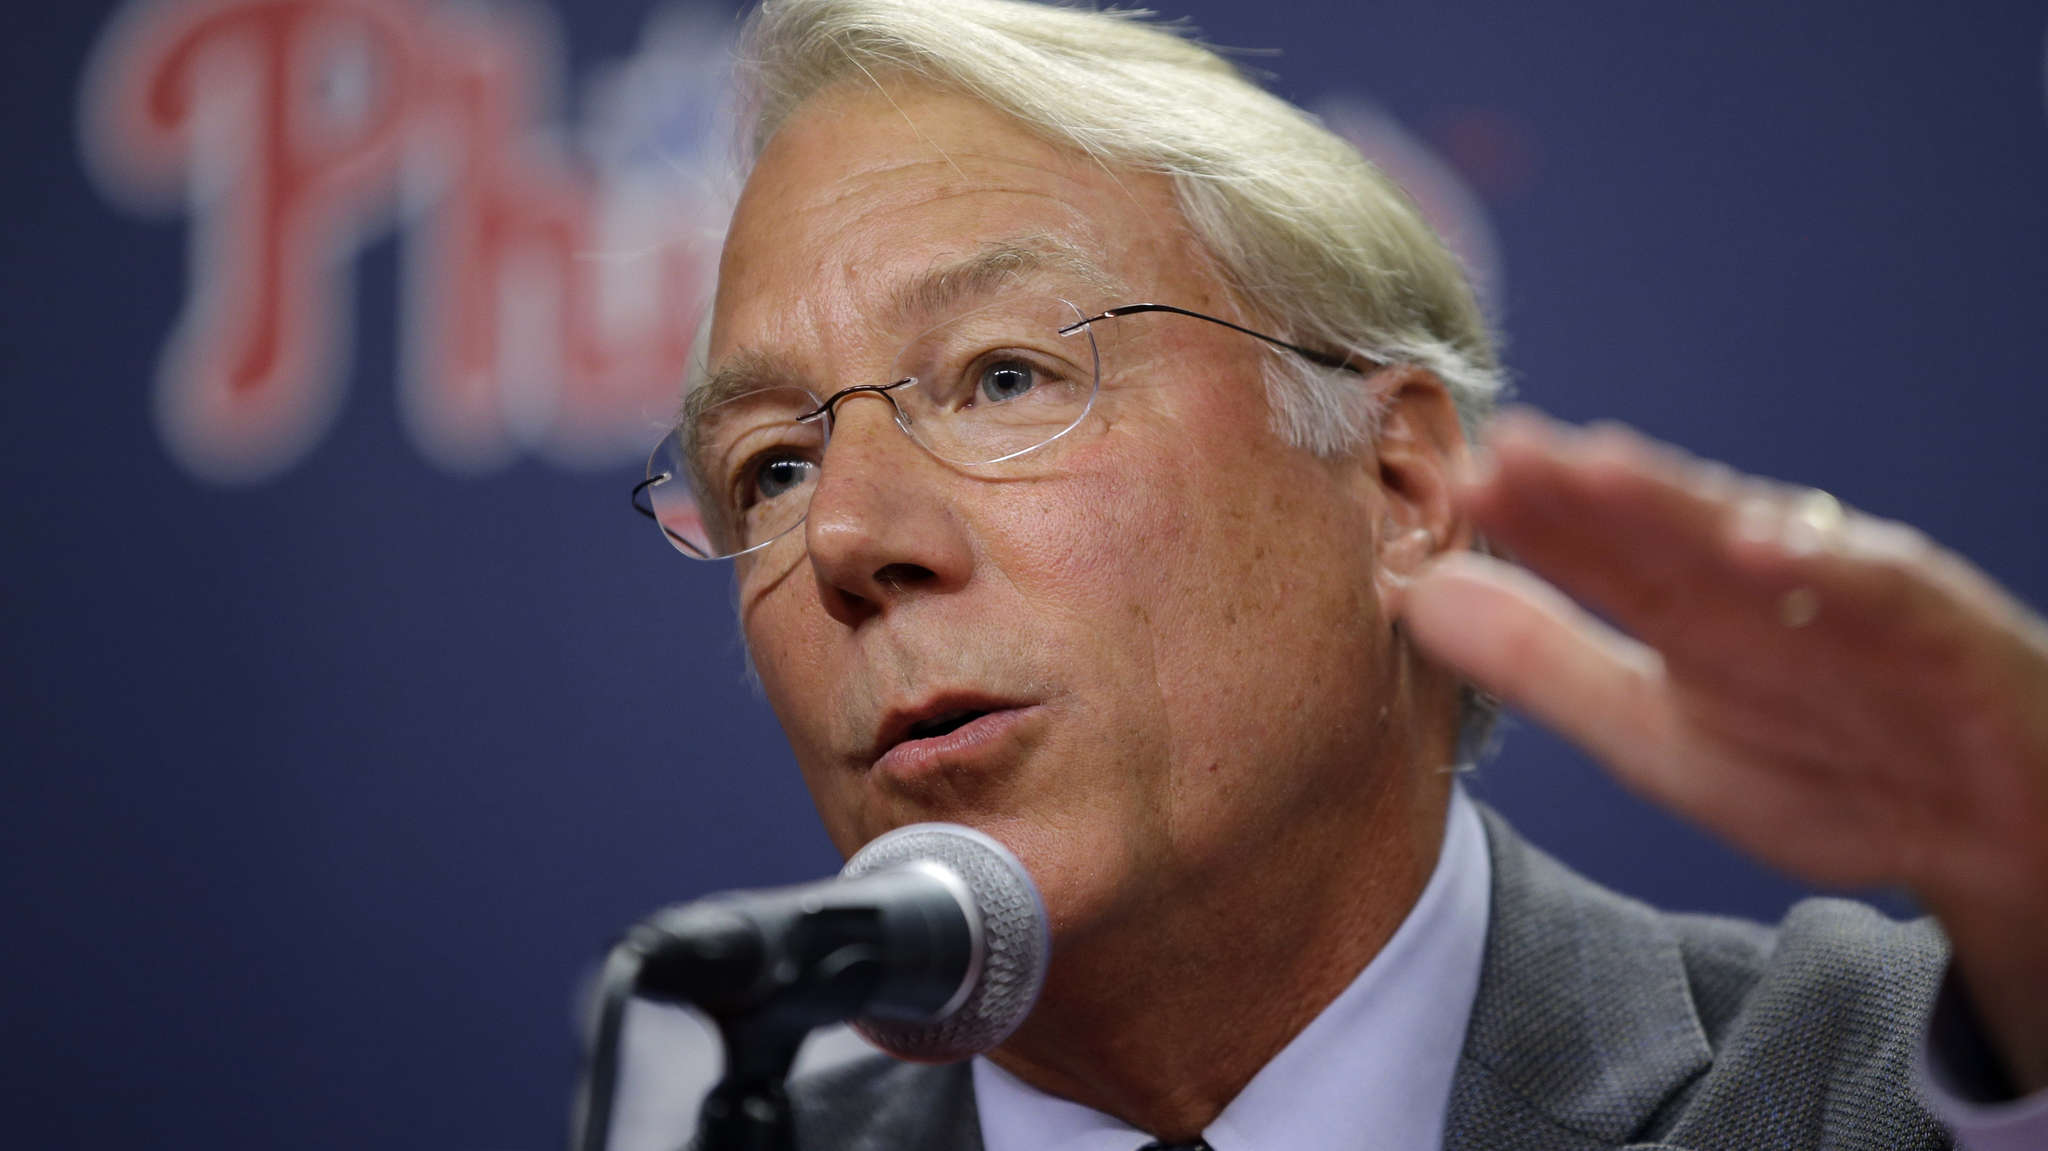 Phillies president Andy MacPhail keeps saying the rebuilding of the team will take a while.